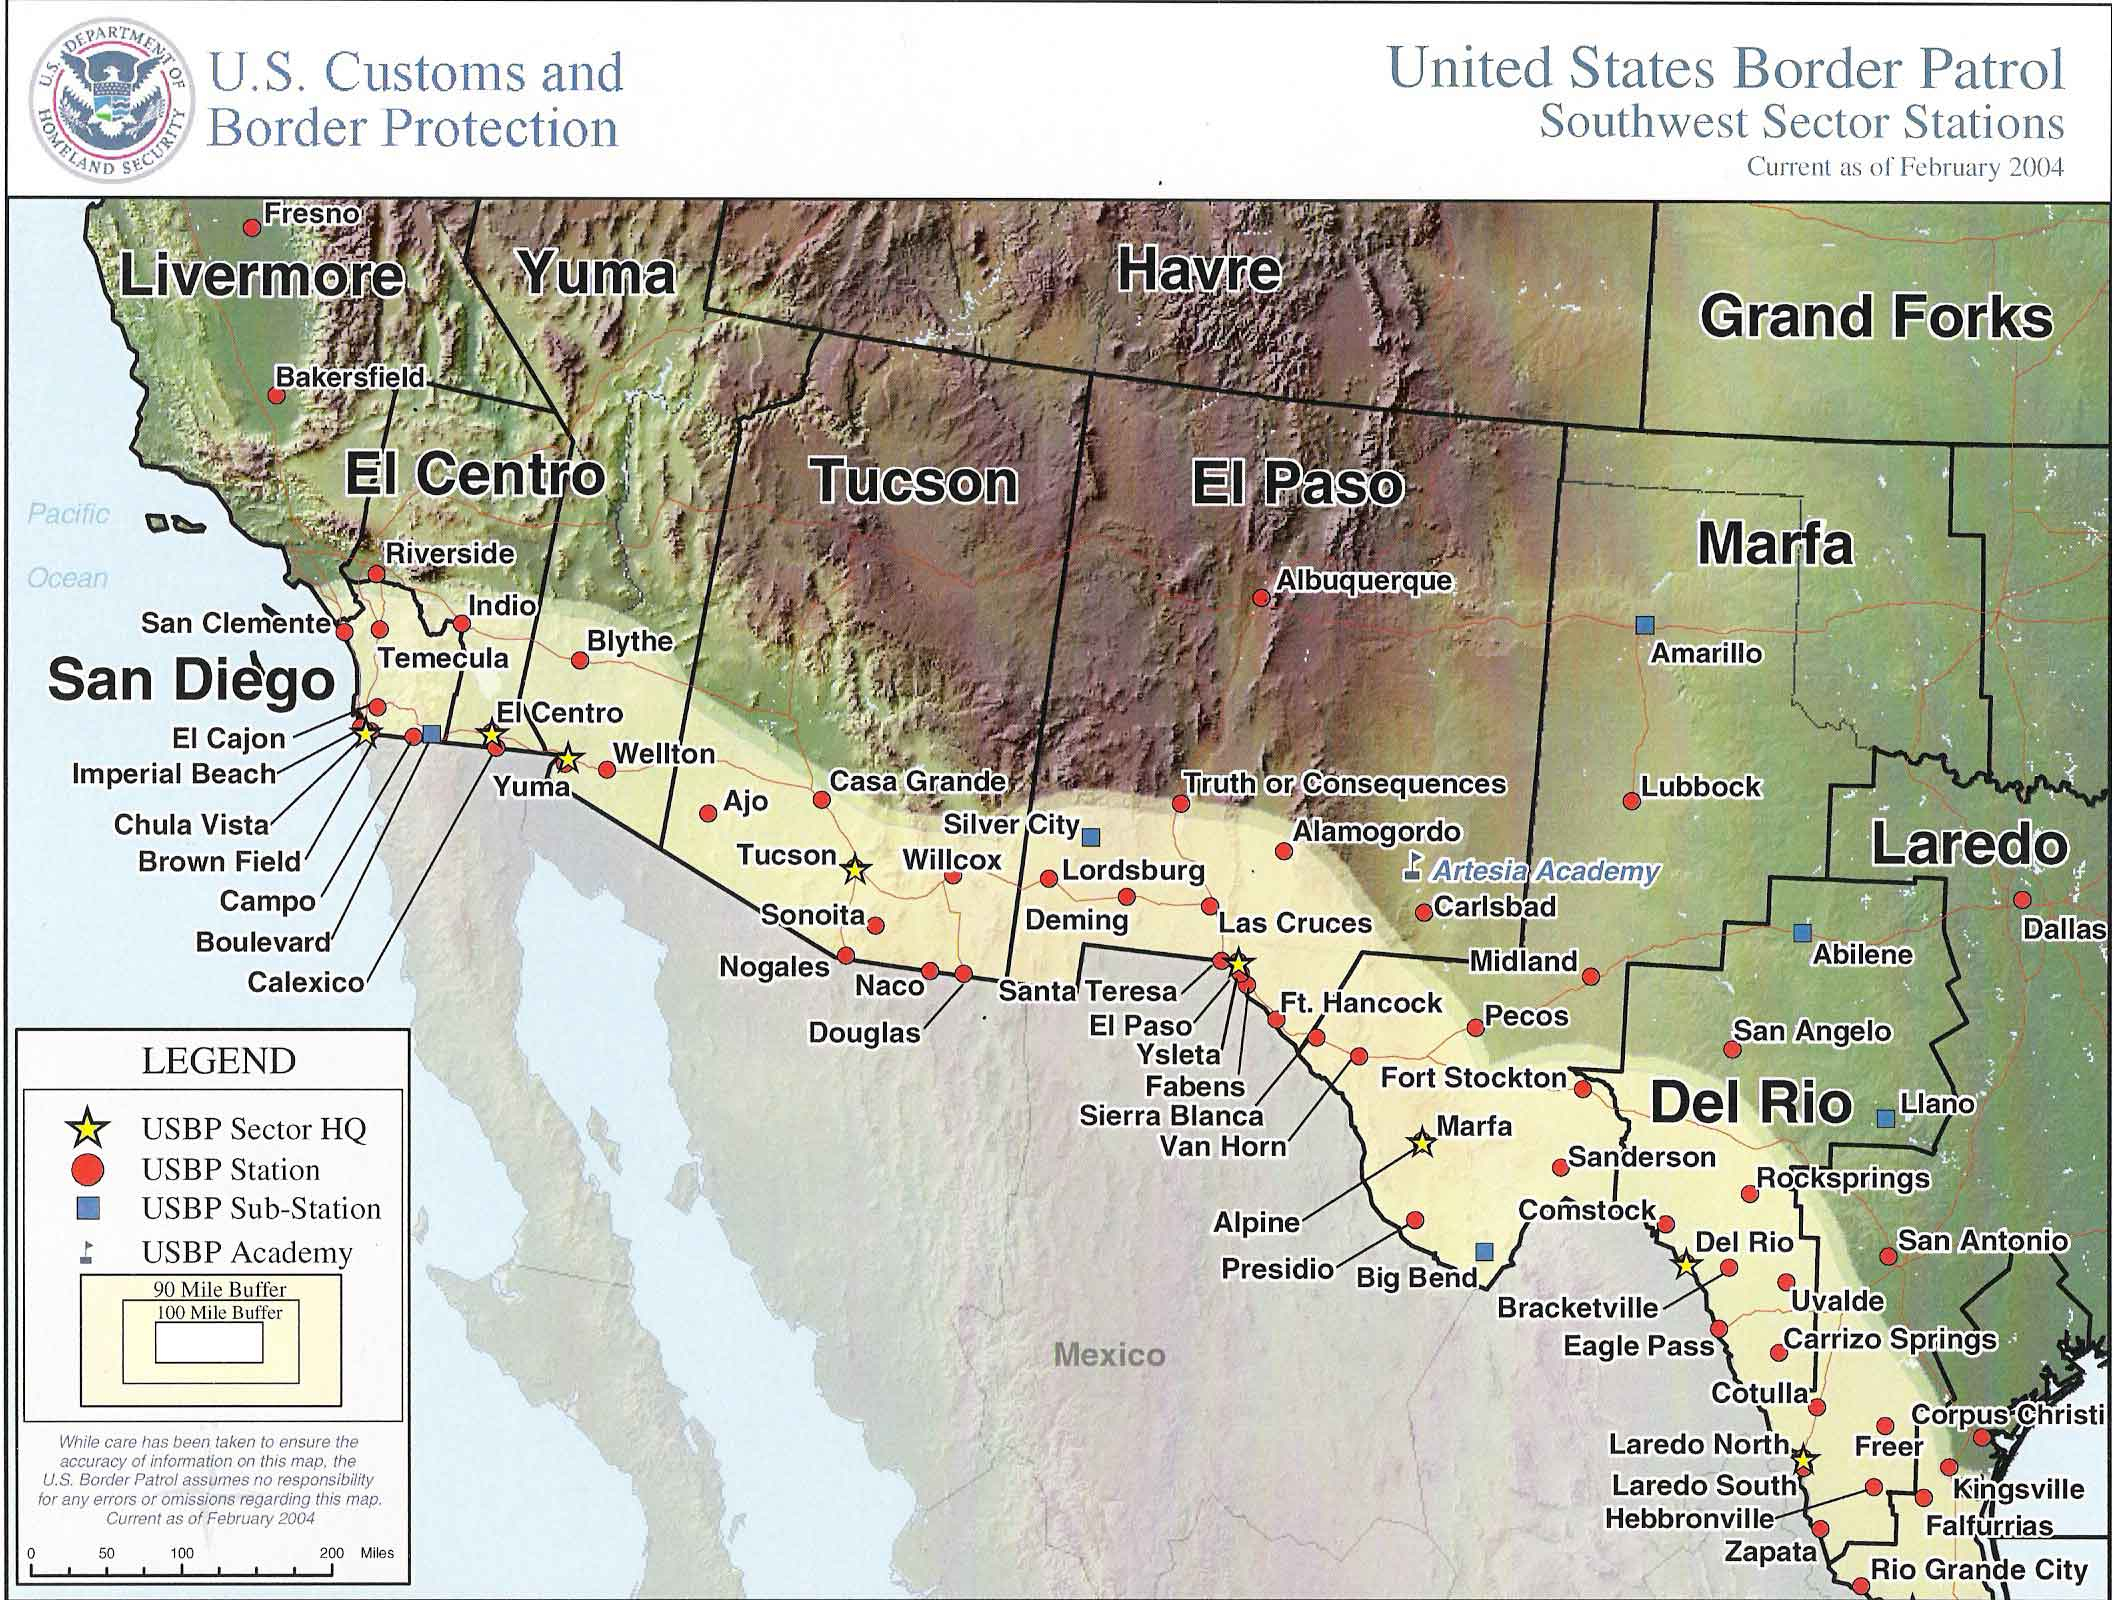 Immigration Checkpoints In Texas Map | Business Ideas 2013 - Immigration Checkpoints In Texas Map